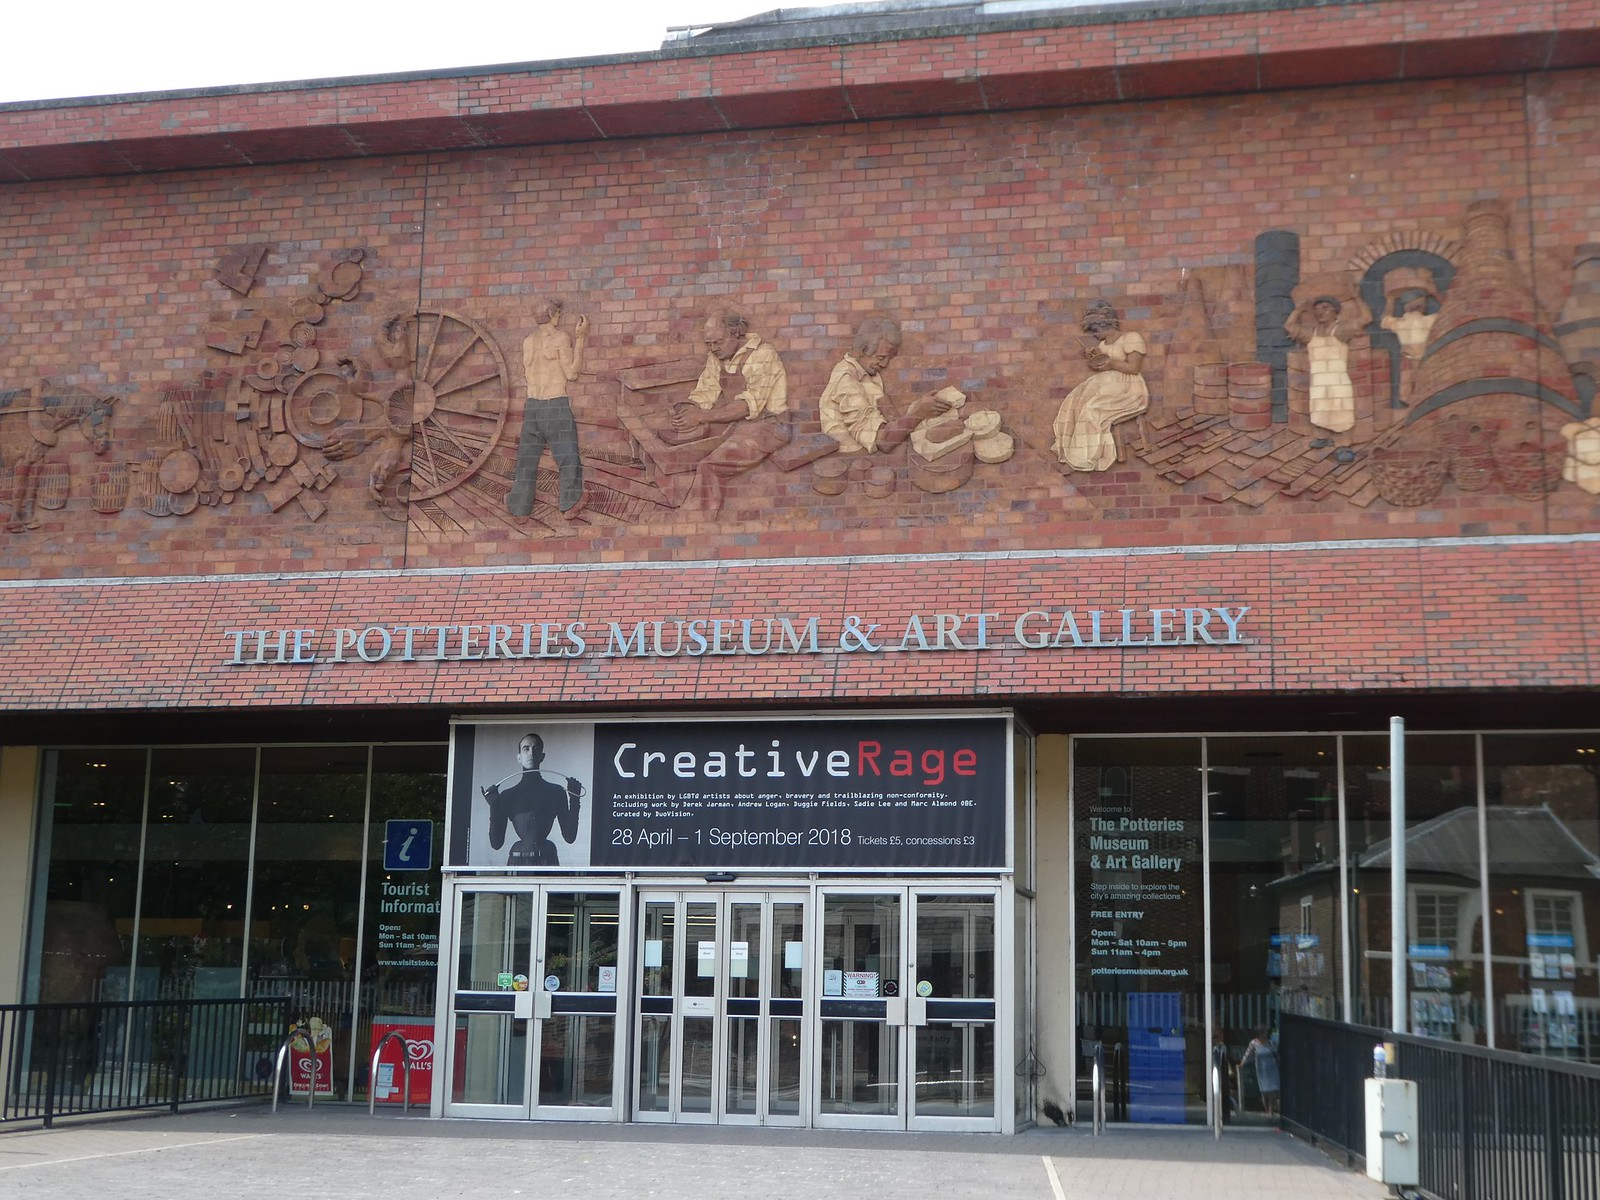 The Potteries Museum & Art Gallery, Hanley, Stoke-on-Trent